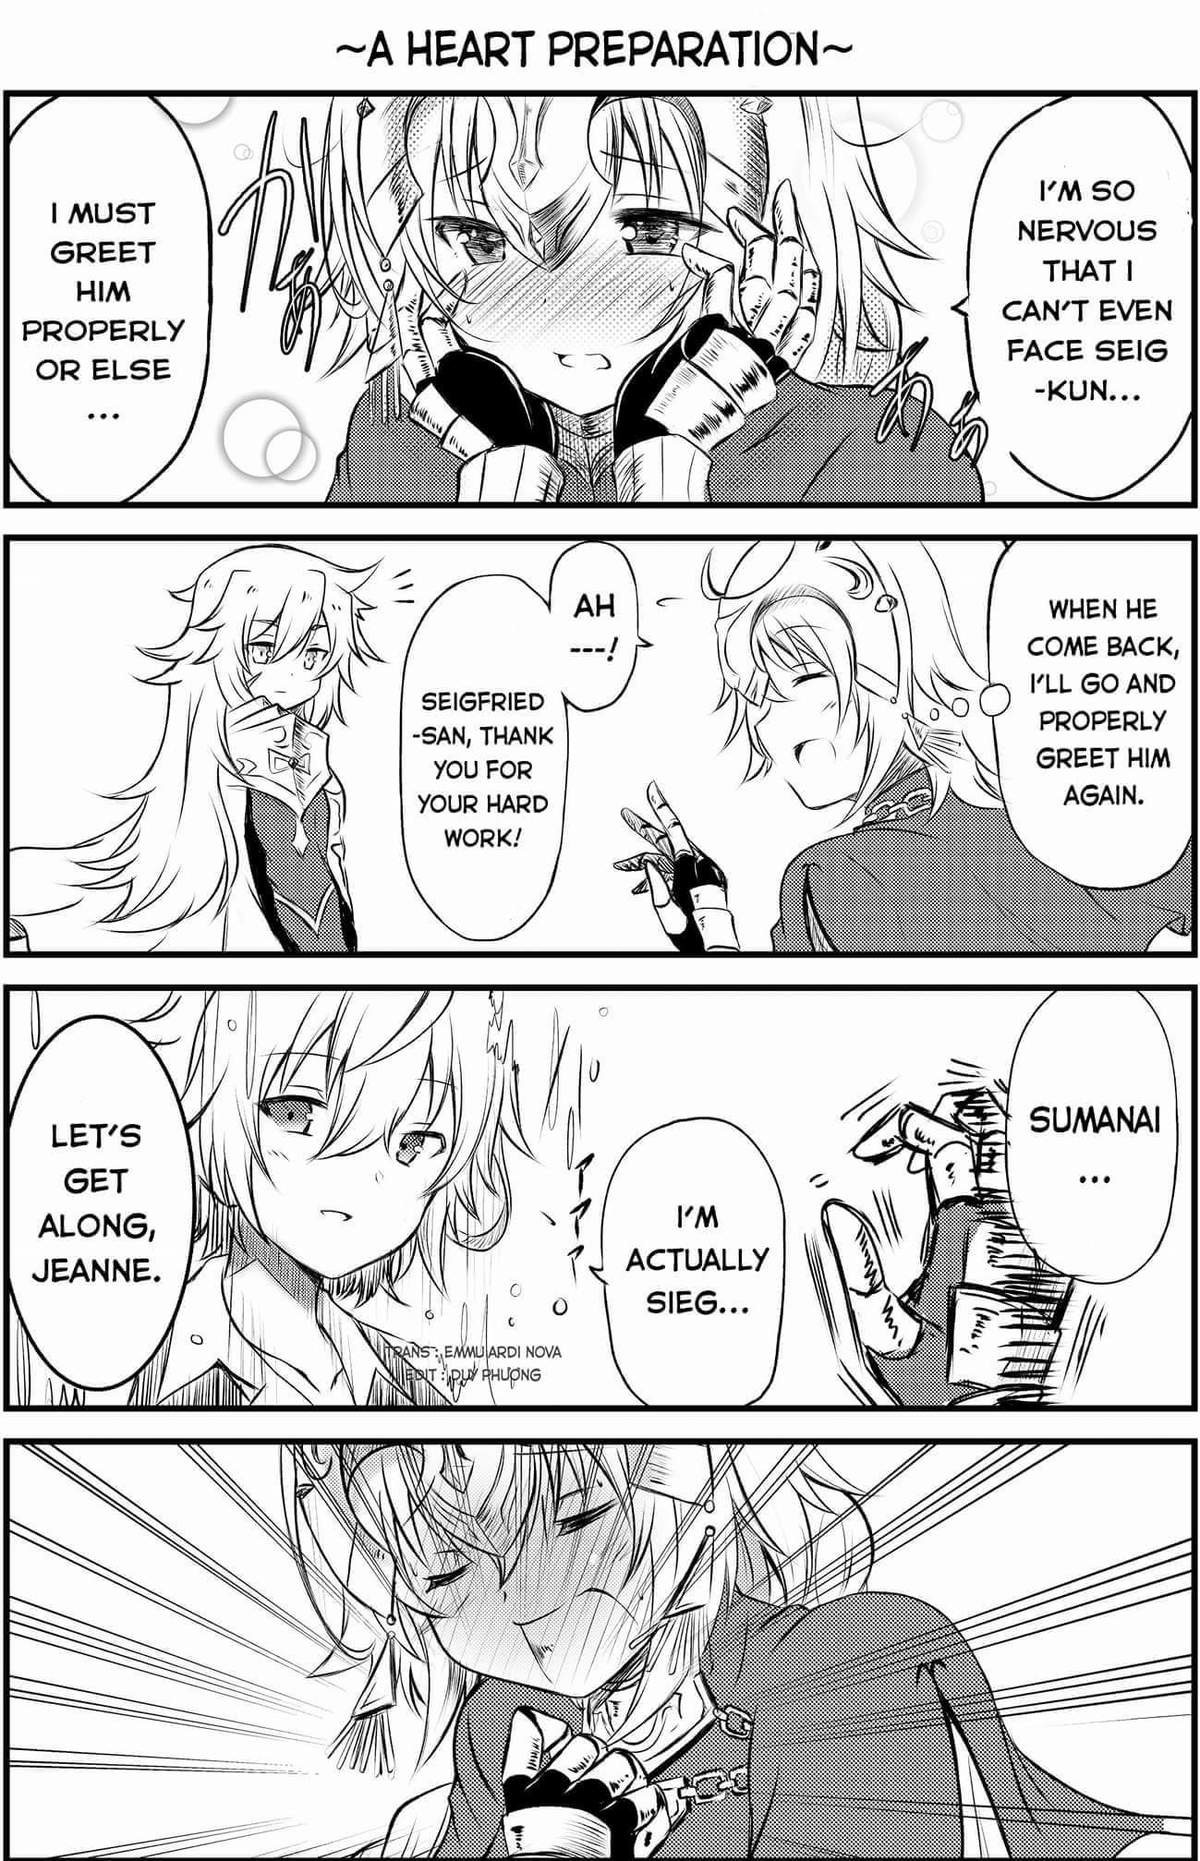 Jeanne Wants That Dragon . https://twitter.com/917narto8537/status/995653533650243589?s=19 join list: Lewds4DHeart (1587 subs)Mention History. PM so NERVOUS ' T